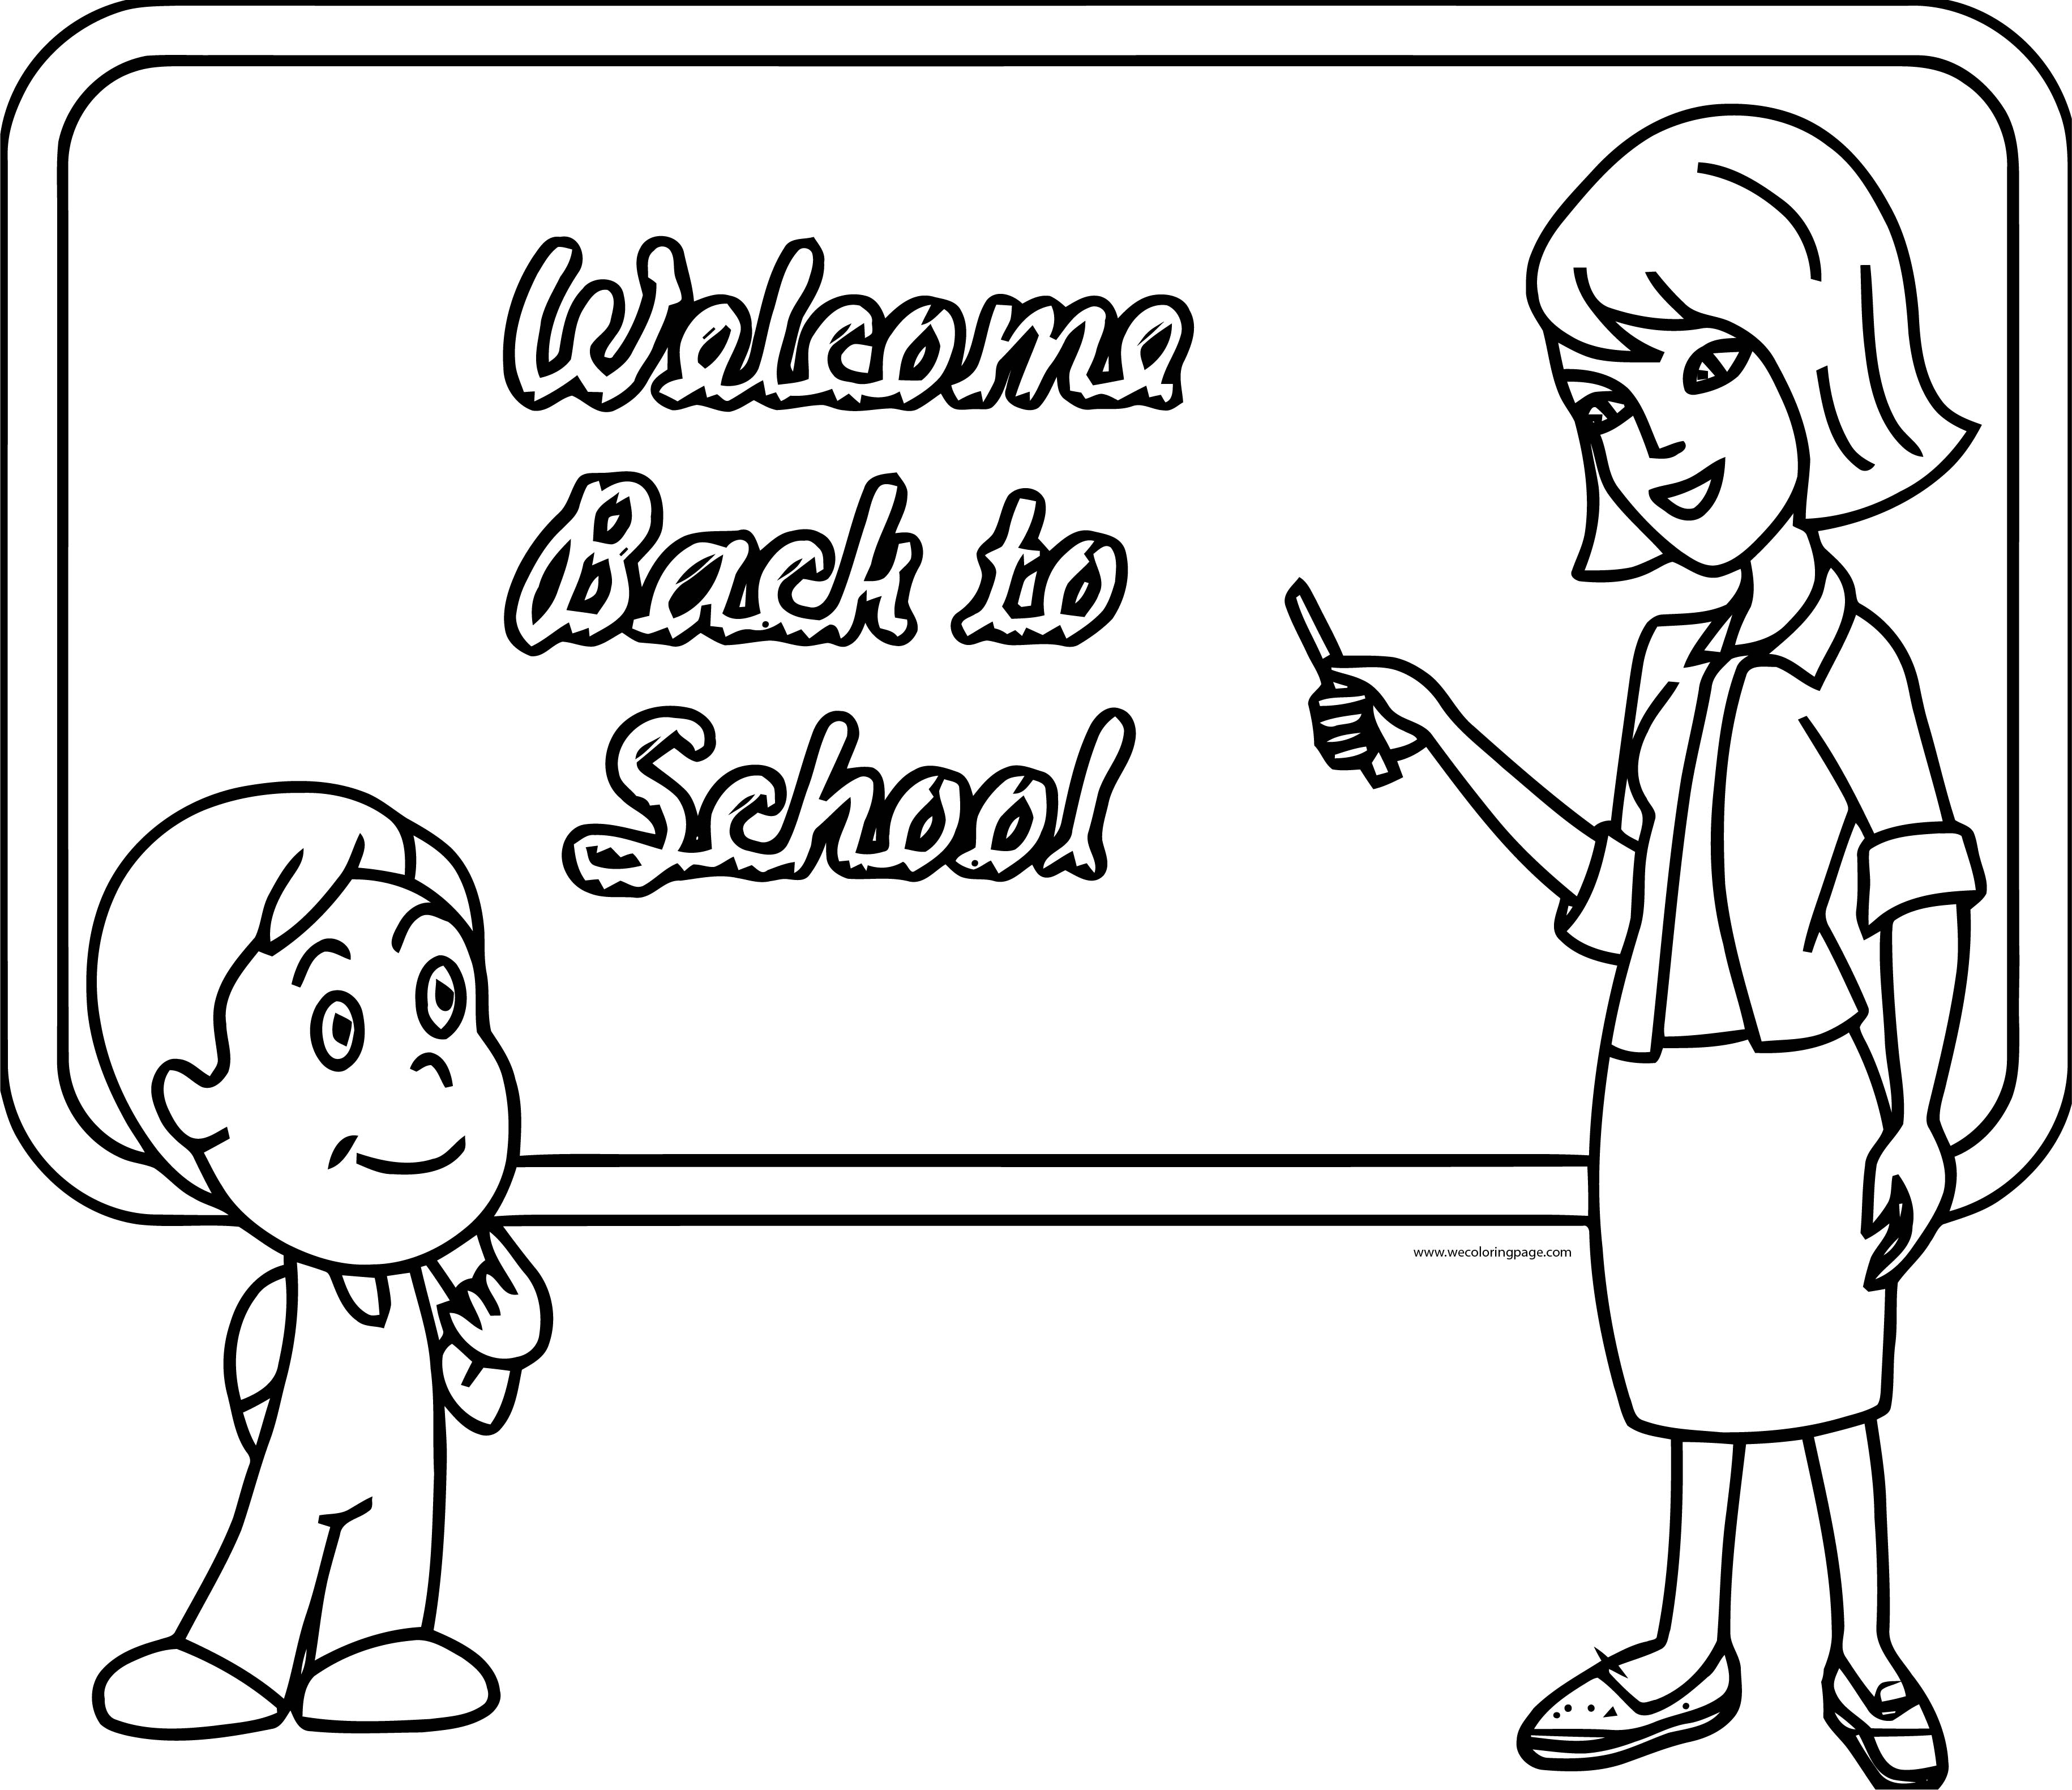 English Teacher Welcome Back To School Coloring Page